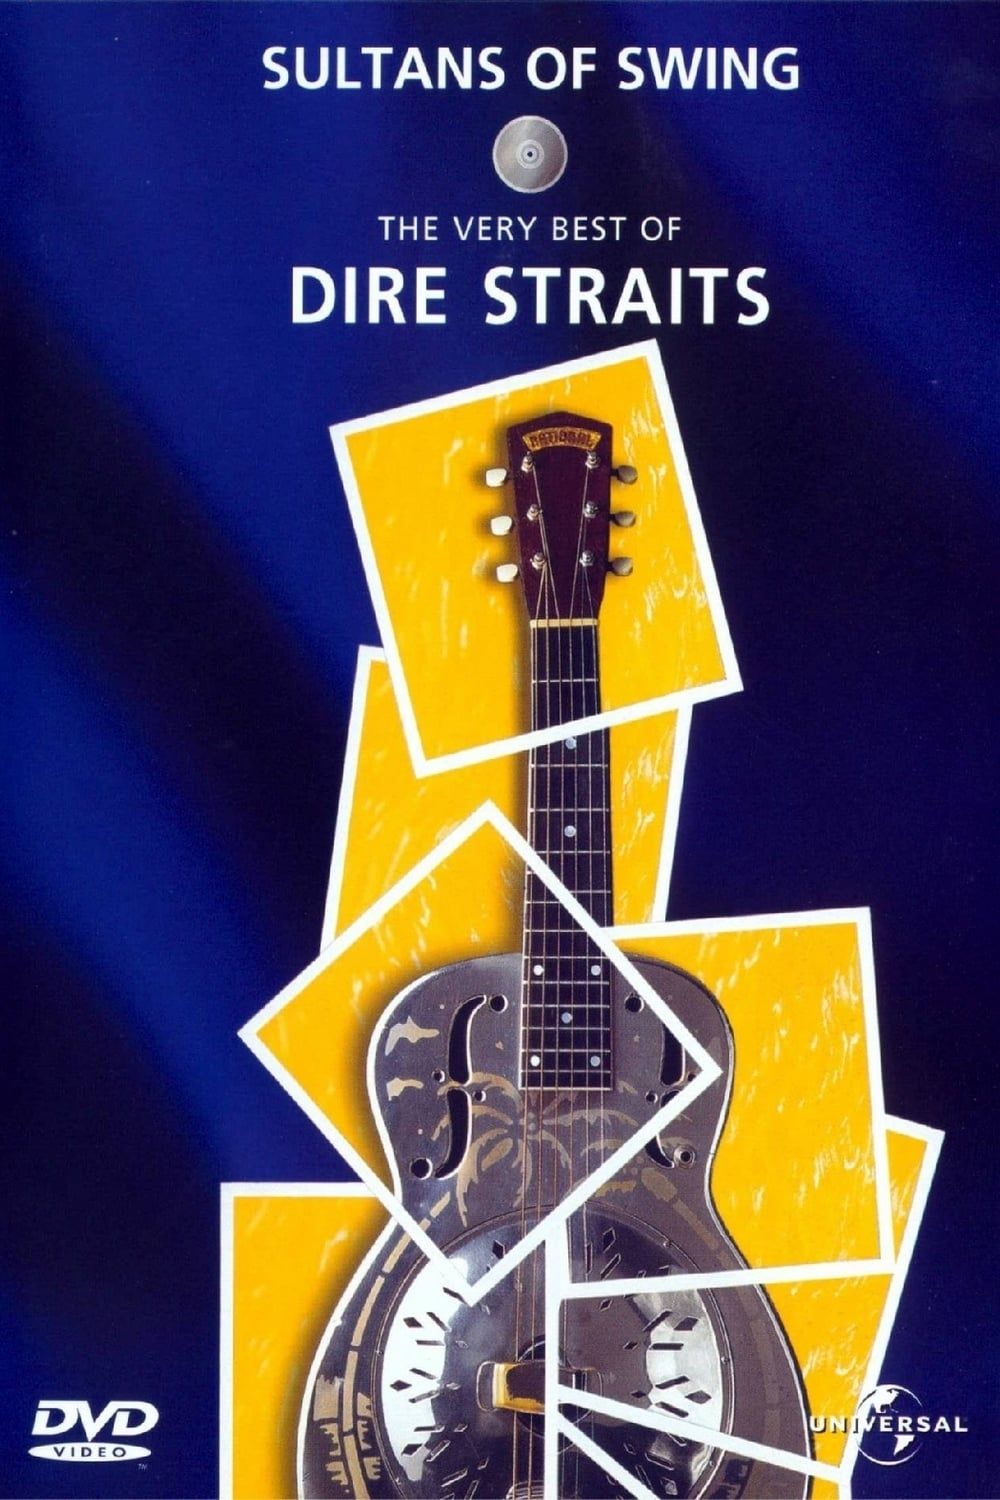 Dire Straits: Sultans of Swing - The Very Best of Dire Straits